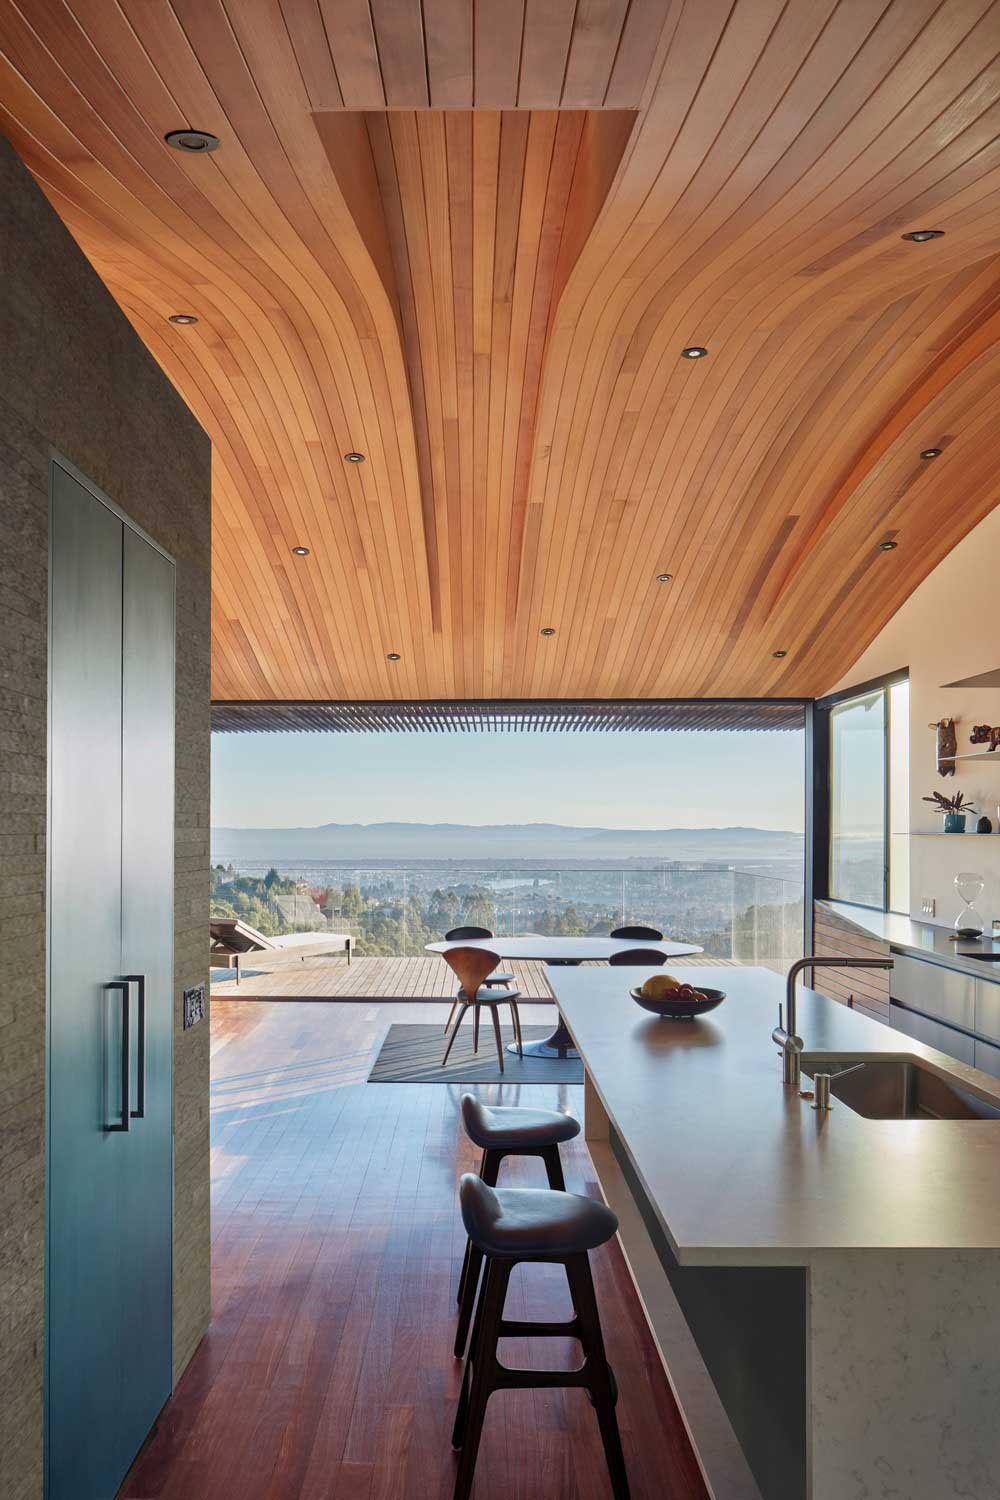 Curved roof design with amazing views